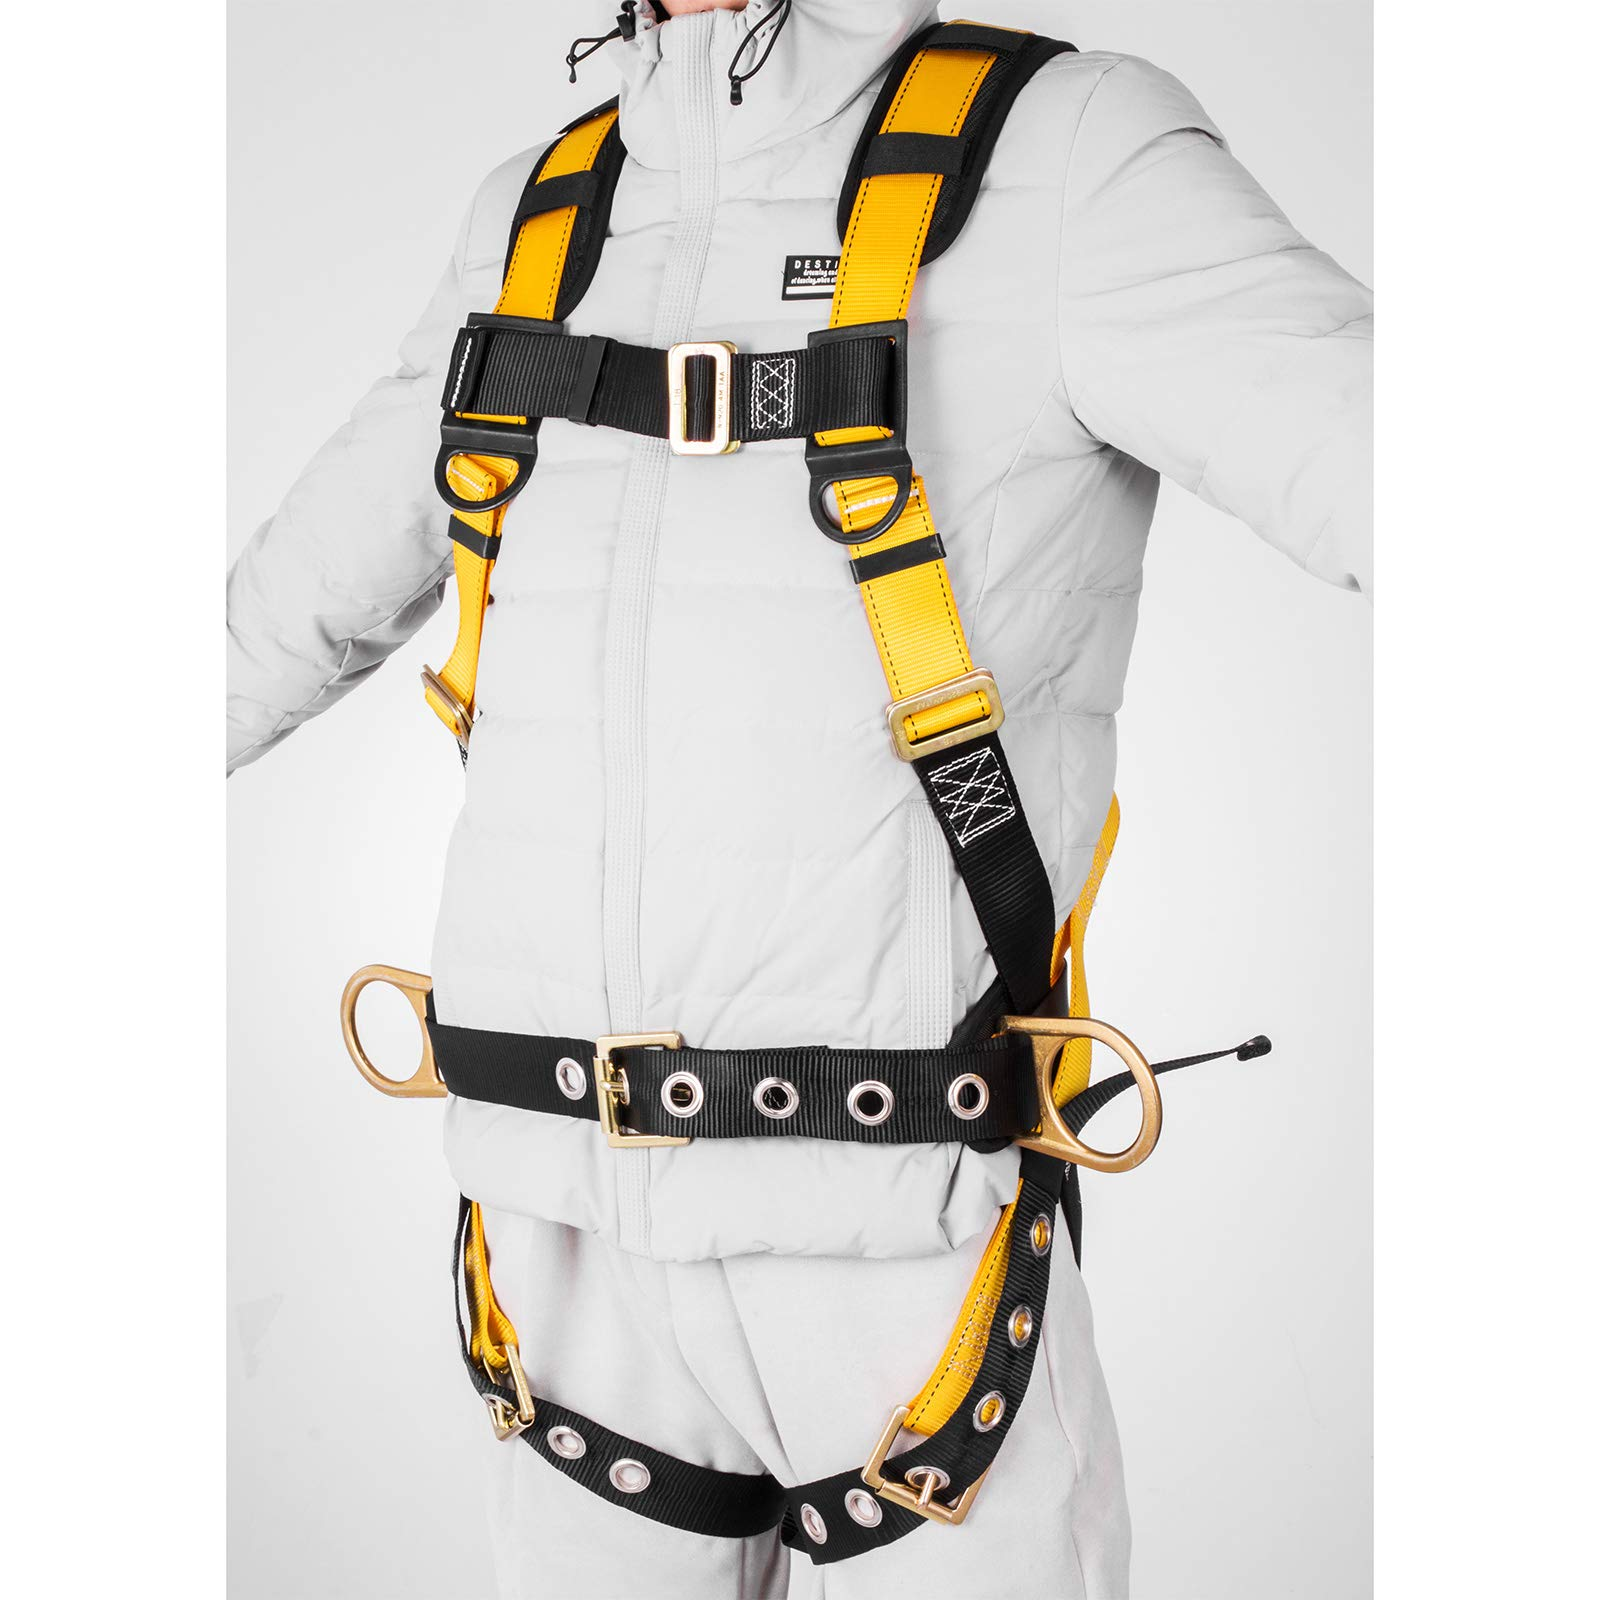 Happybuy Construction Safety Harness Fall Protection Full Body Safety Harness with 3 D-Rings,Belt and Additional Padding (Yellow with Belt) by Happybuy (Image #4)